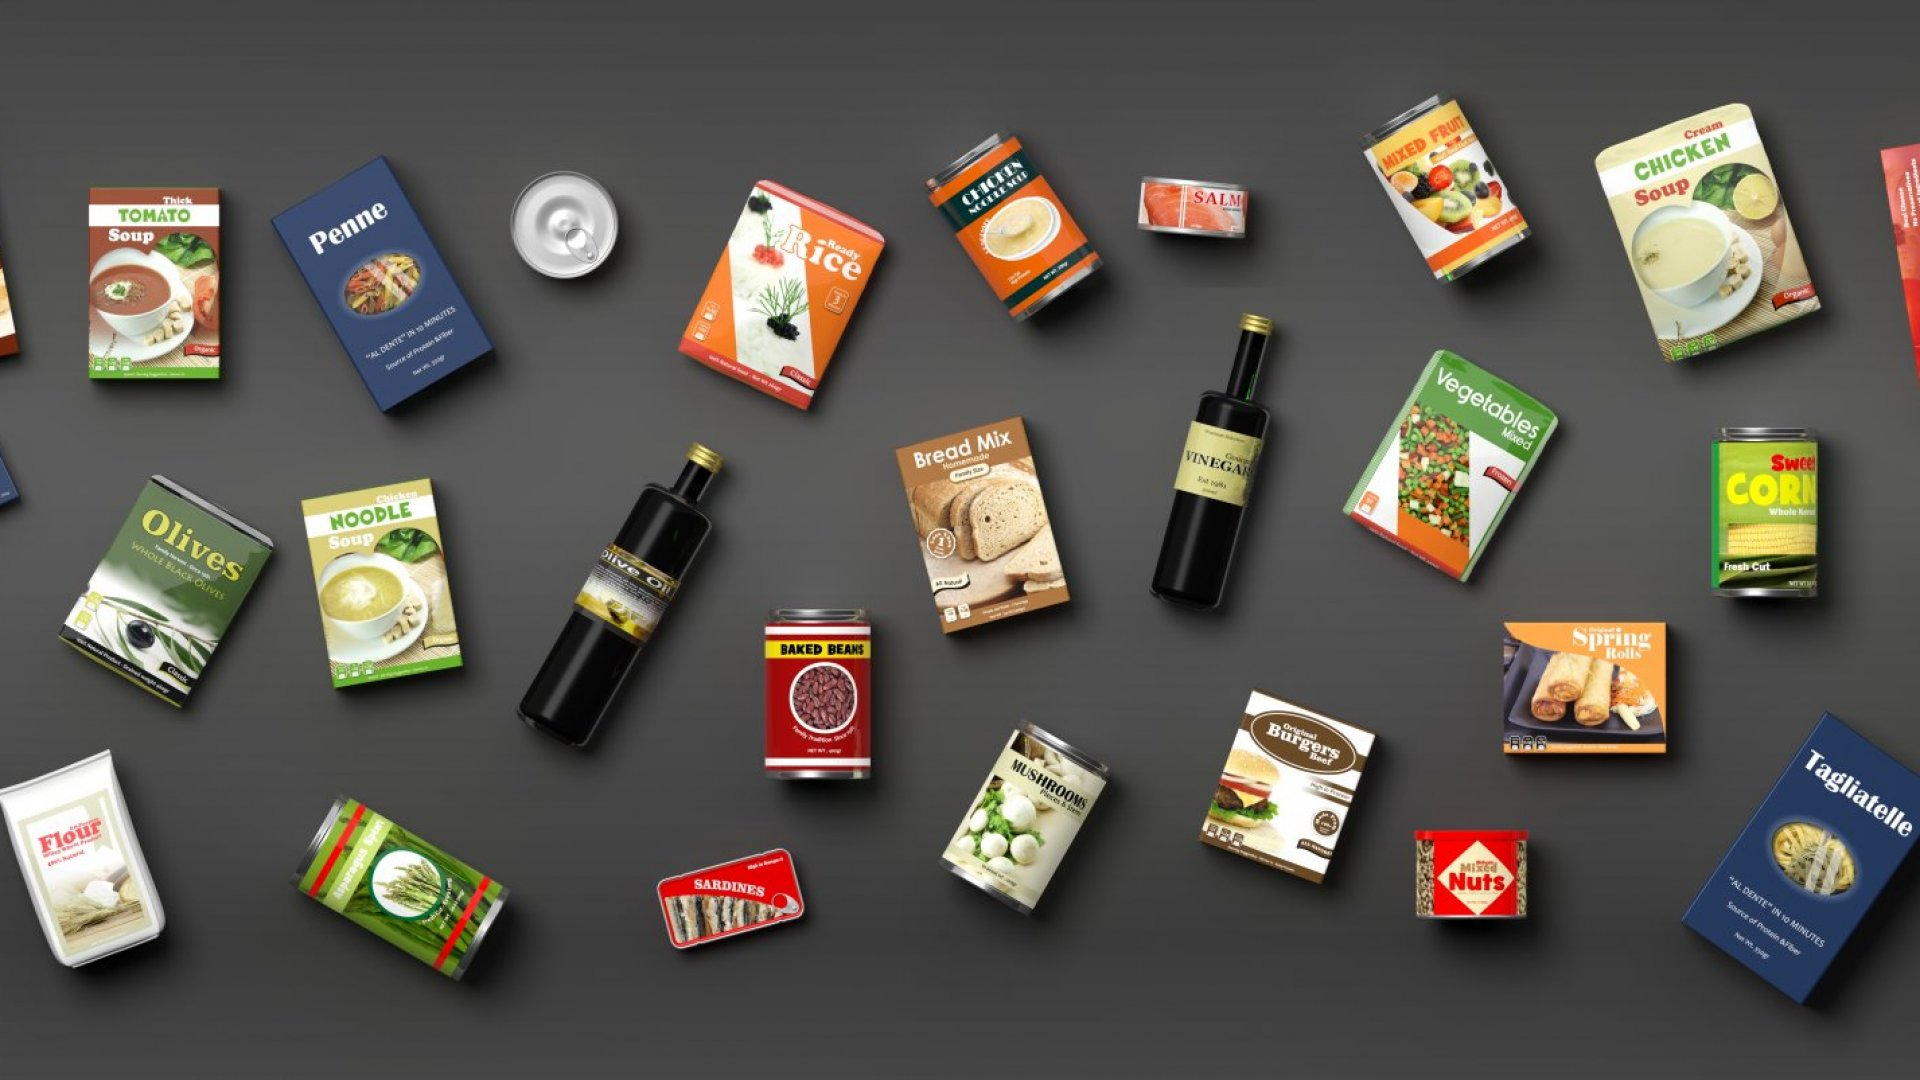 Disrupting the Consumer Experience: CPG Trends We Can Learn From